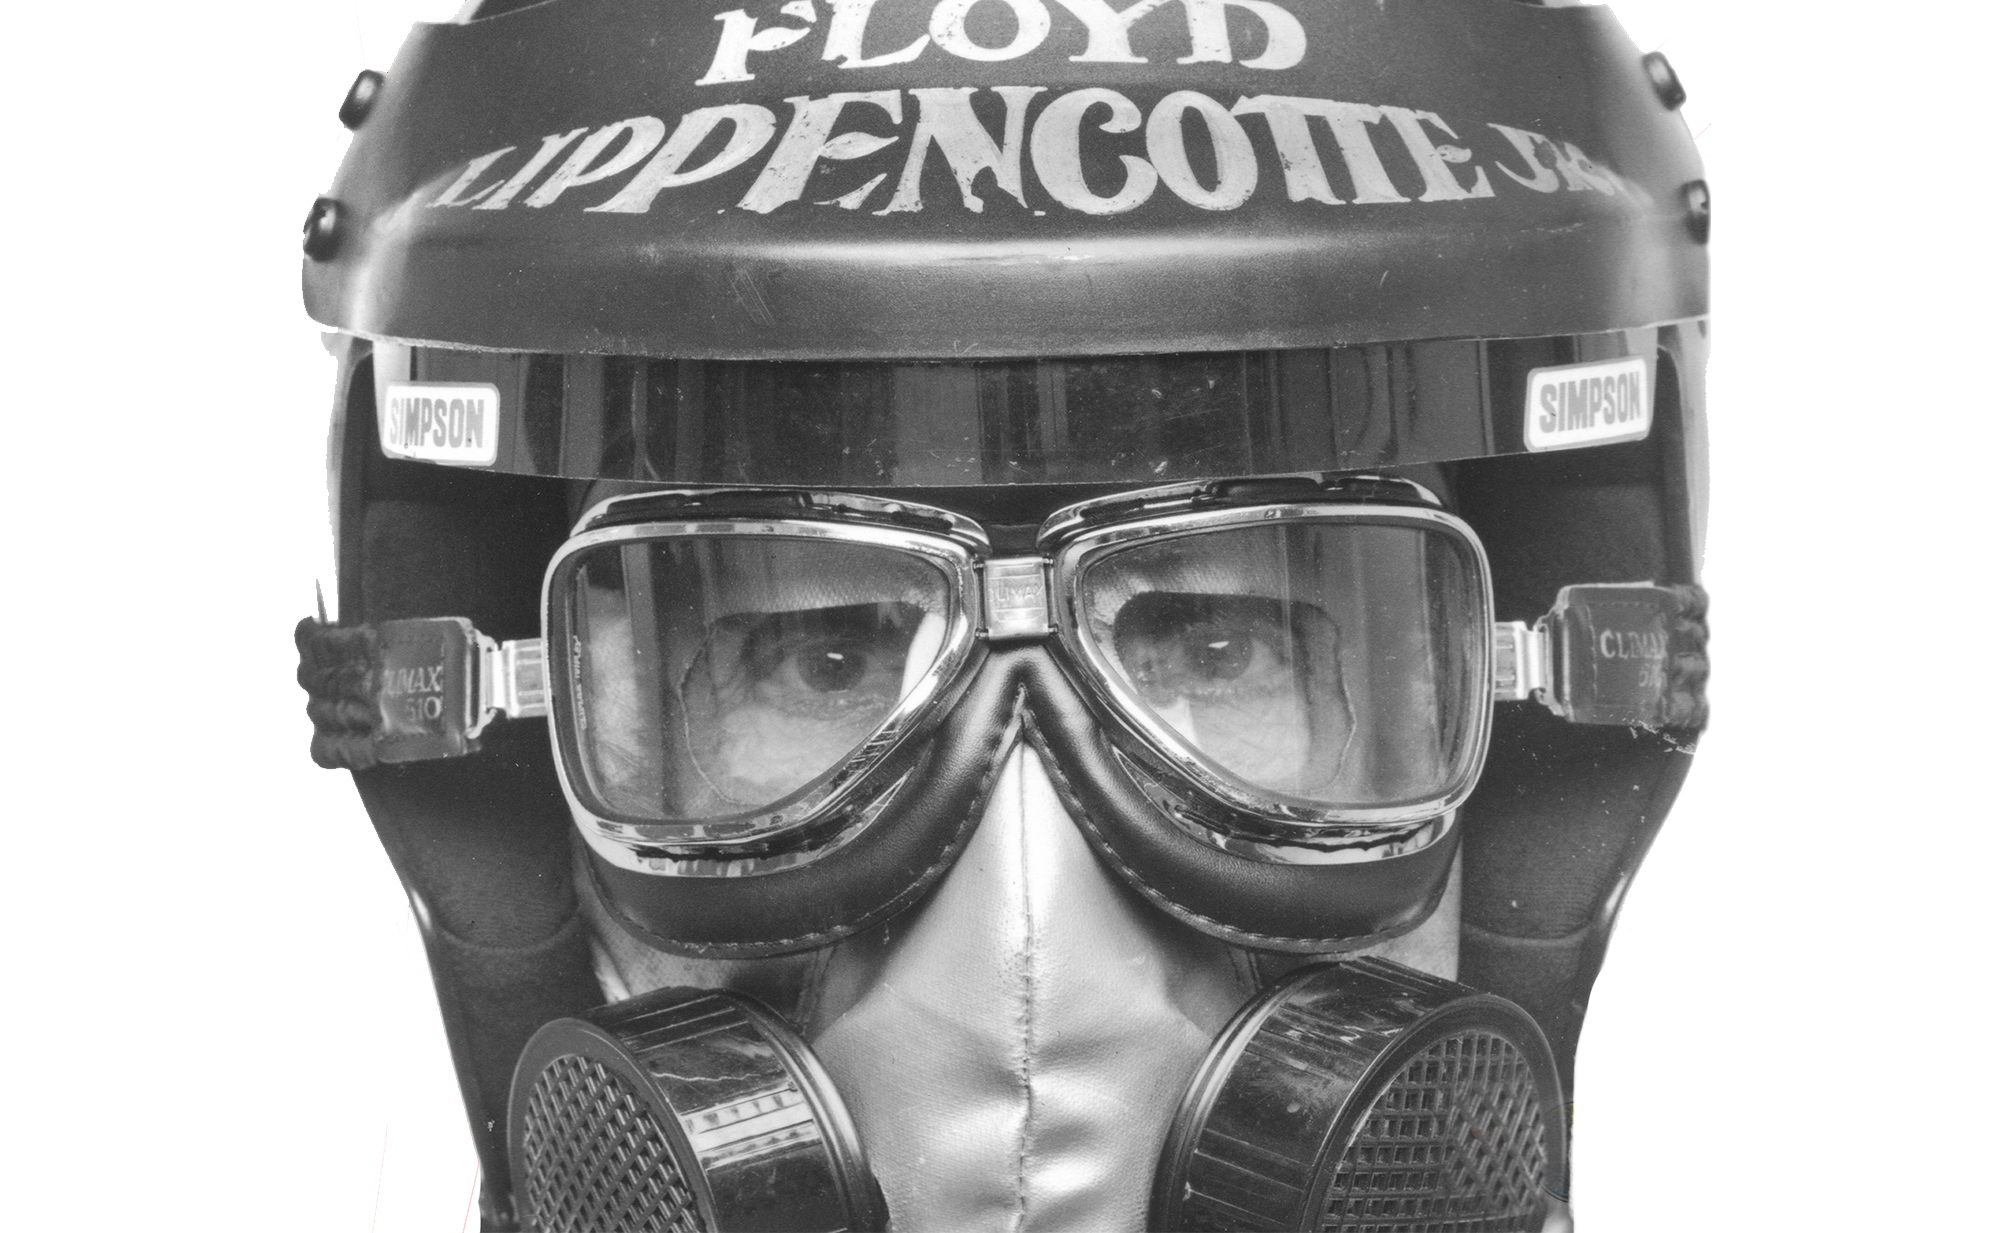 A close up black and white photo of Bob Muravez's face as Floyd Lippencott, wearing a racing helmet and facemask, staring straight into the camera.